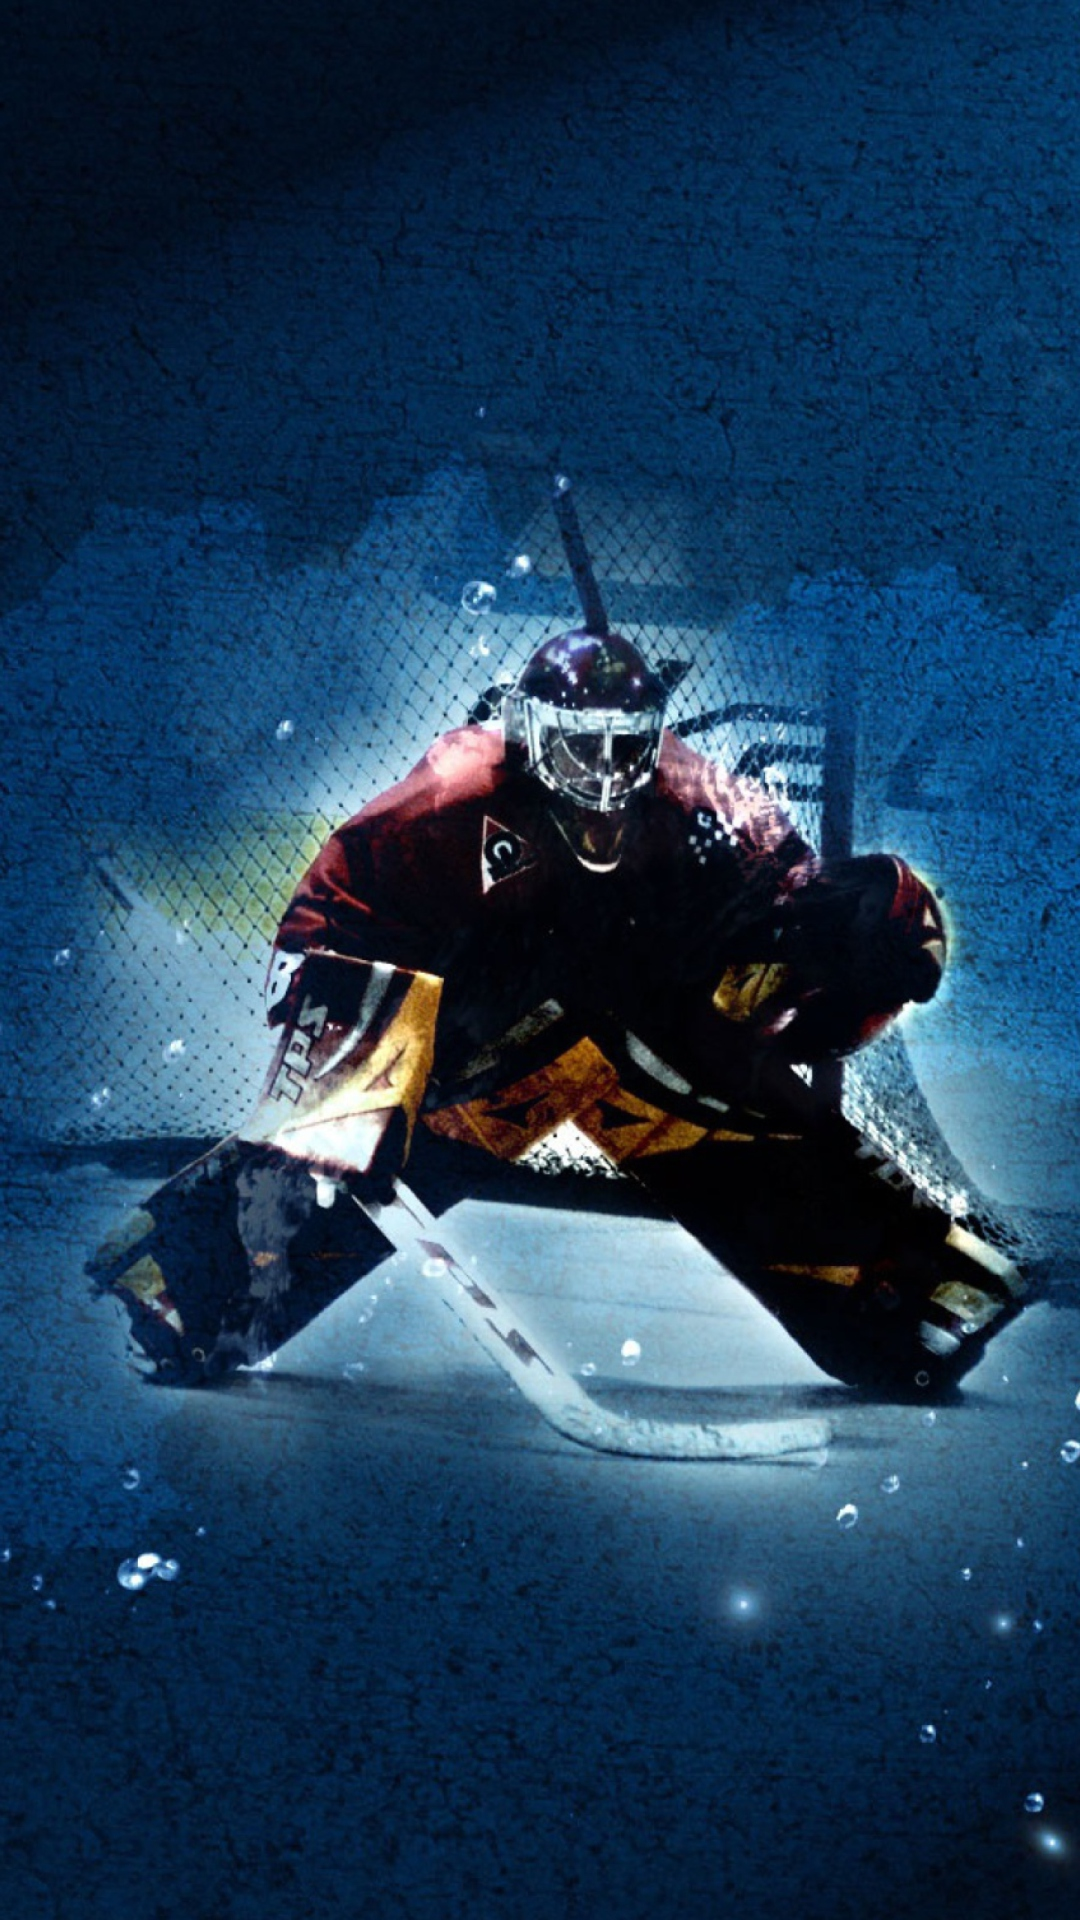 Free Download Ice Hockey Wallpapers For Iphone 7 Iphone 7 Plus